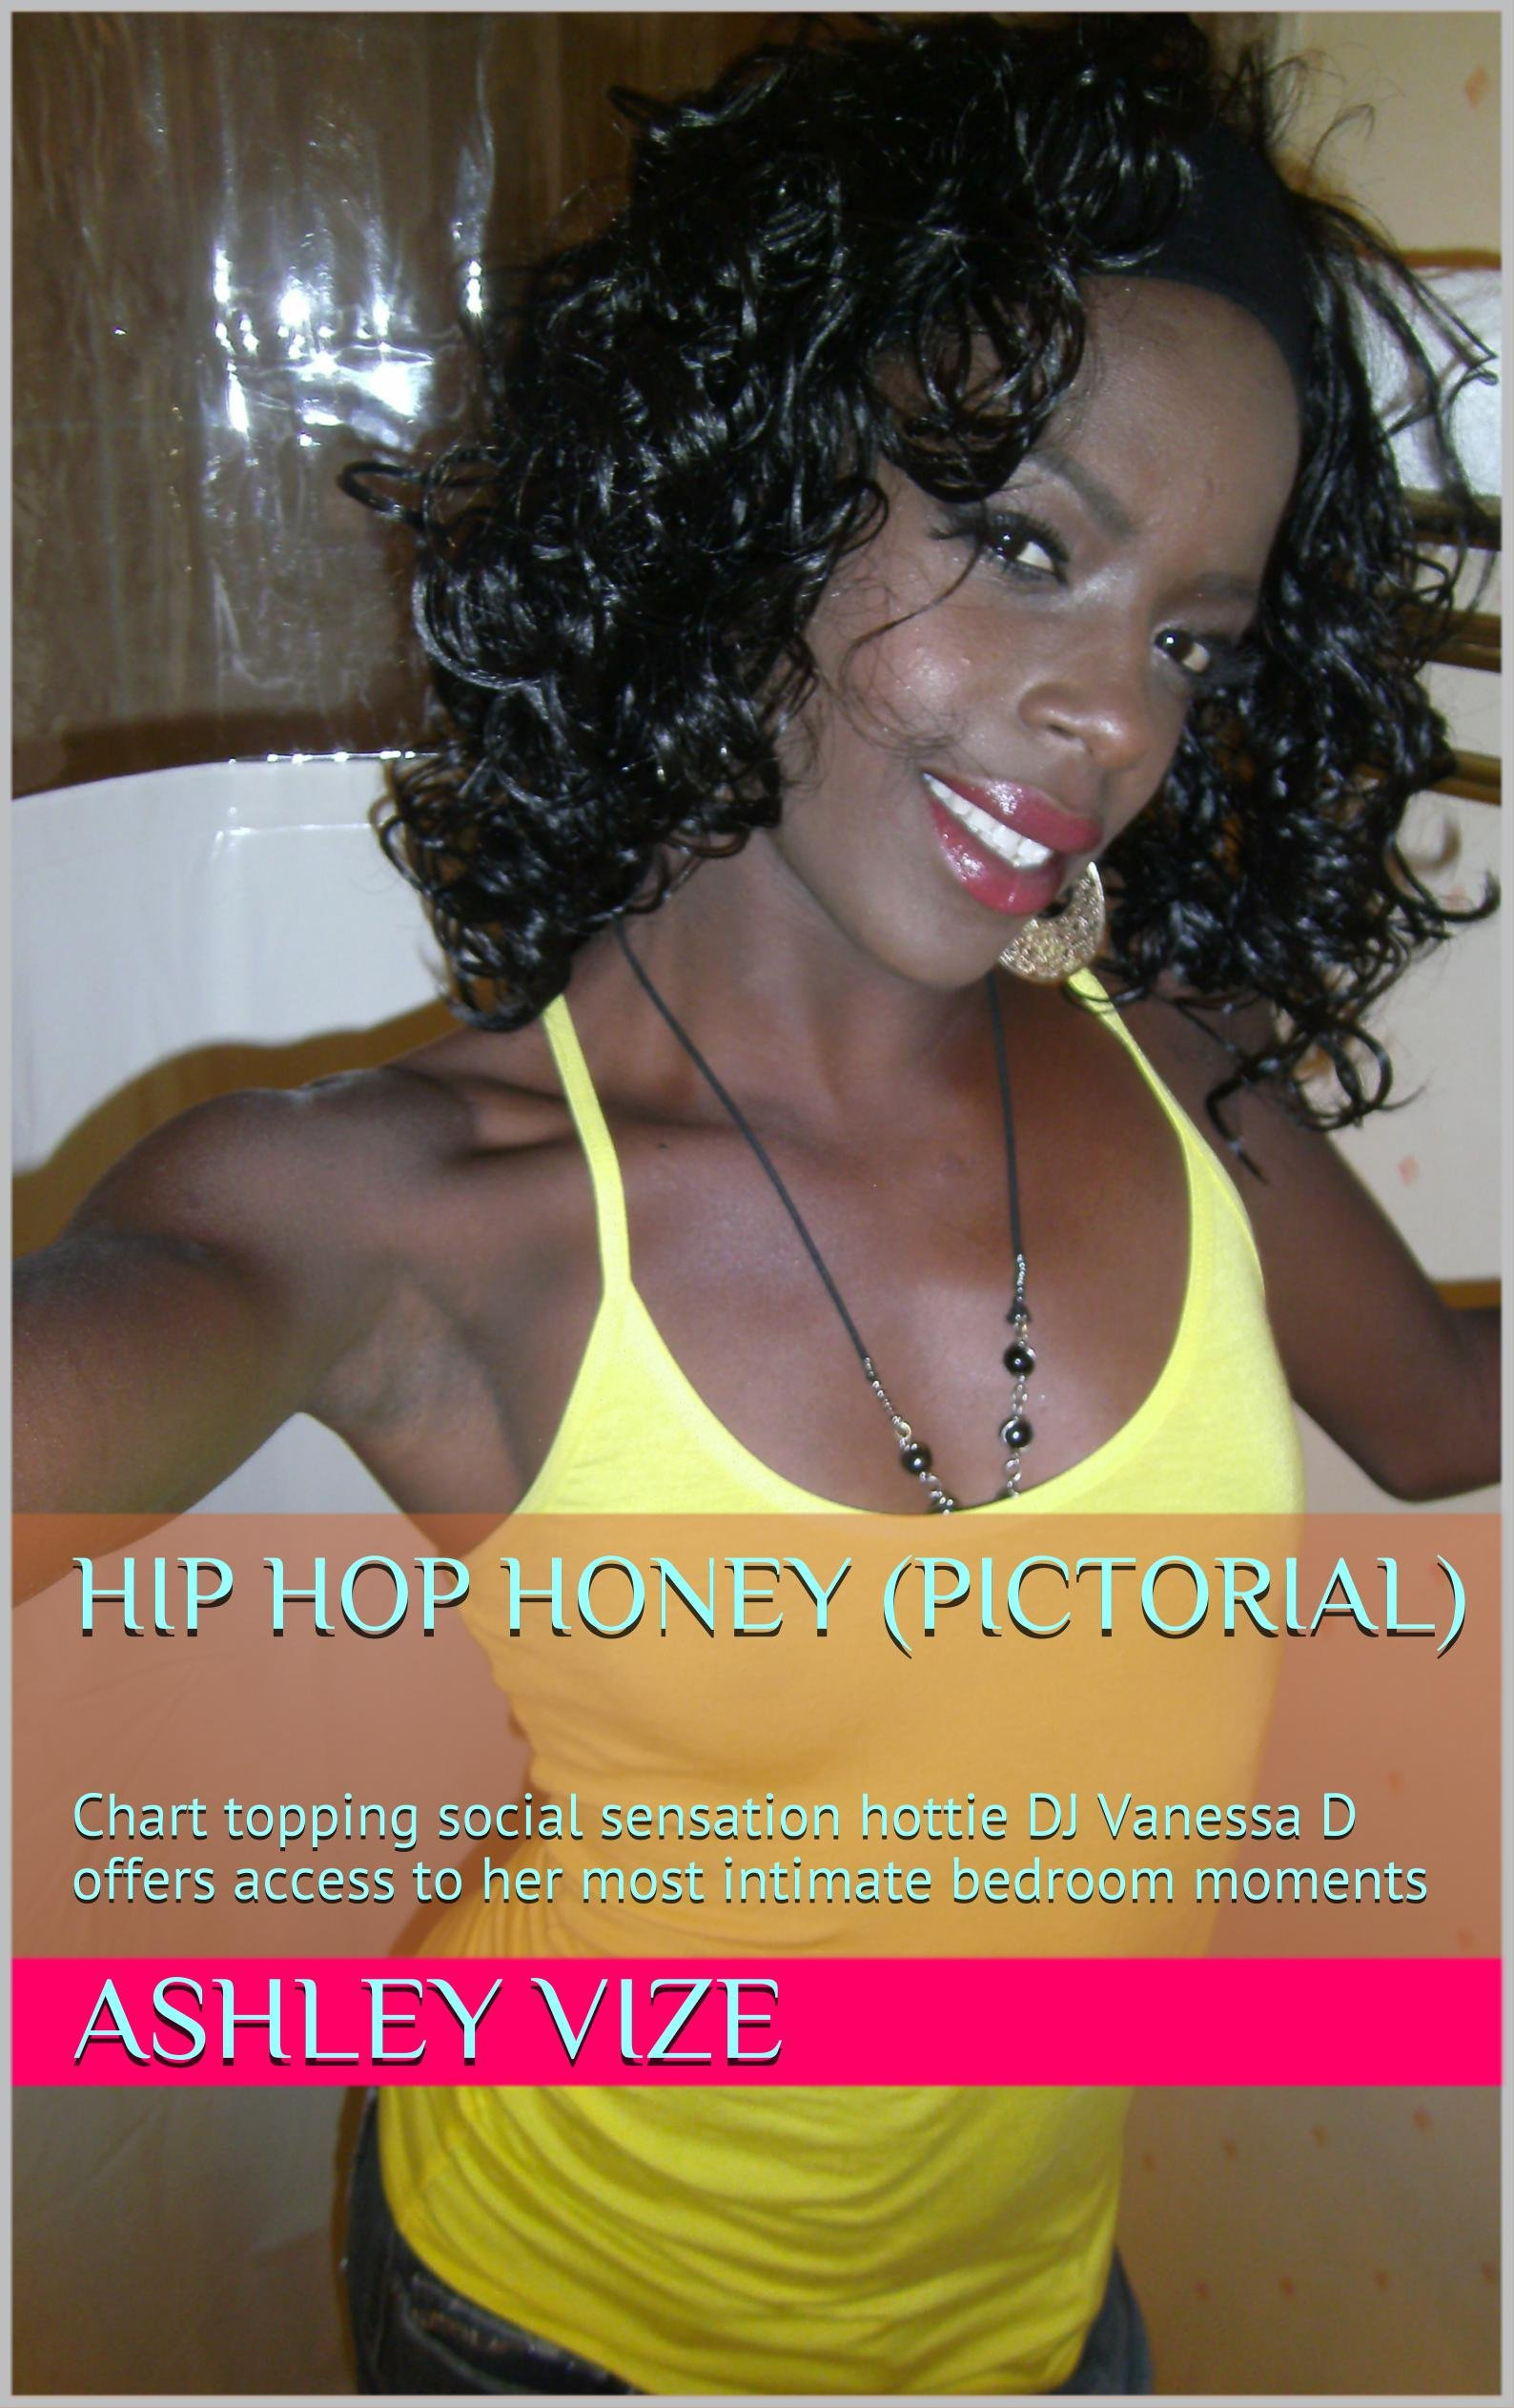 Hip Hop Honey (pictorial): Chart topping social sensation hottie DJ Vanessa D offers access to her most intimate bedroom moments por Ashley Vize